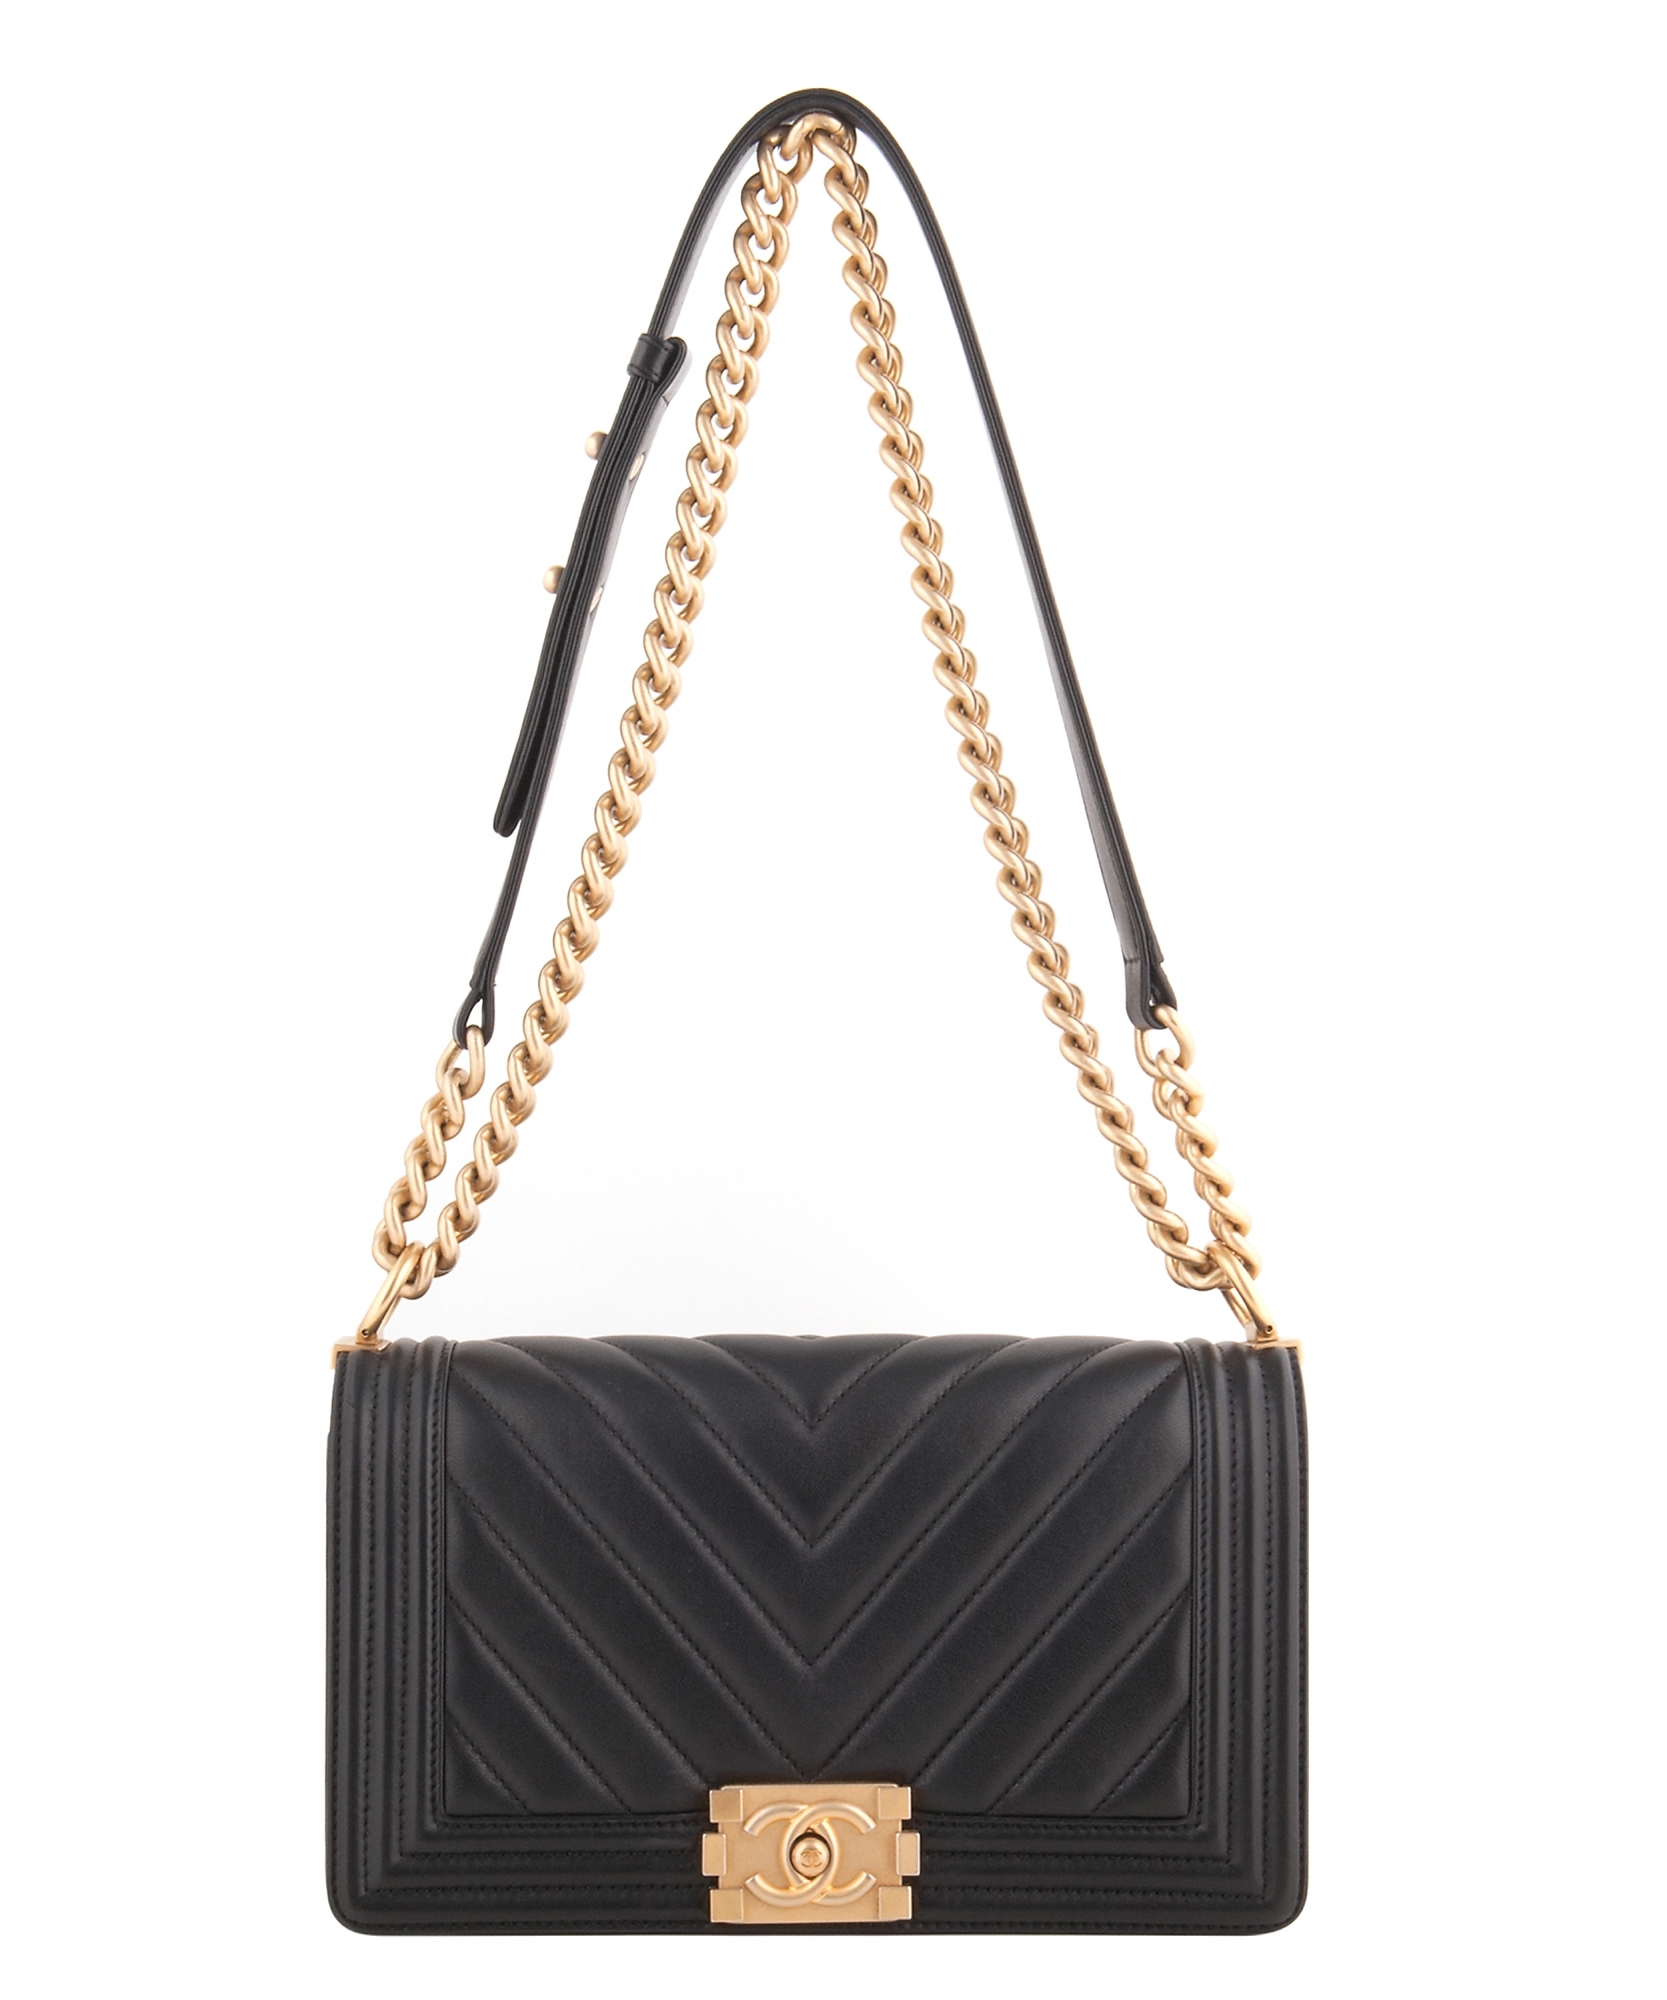 169274679b7a Chanel Black Chevron Quilted Medium Boy Bag | La Doyenne